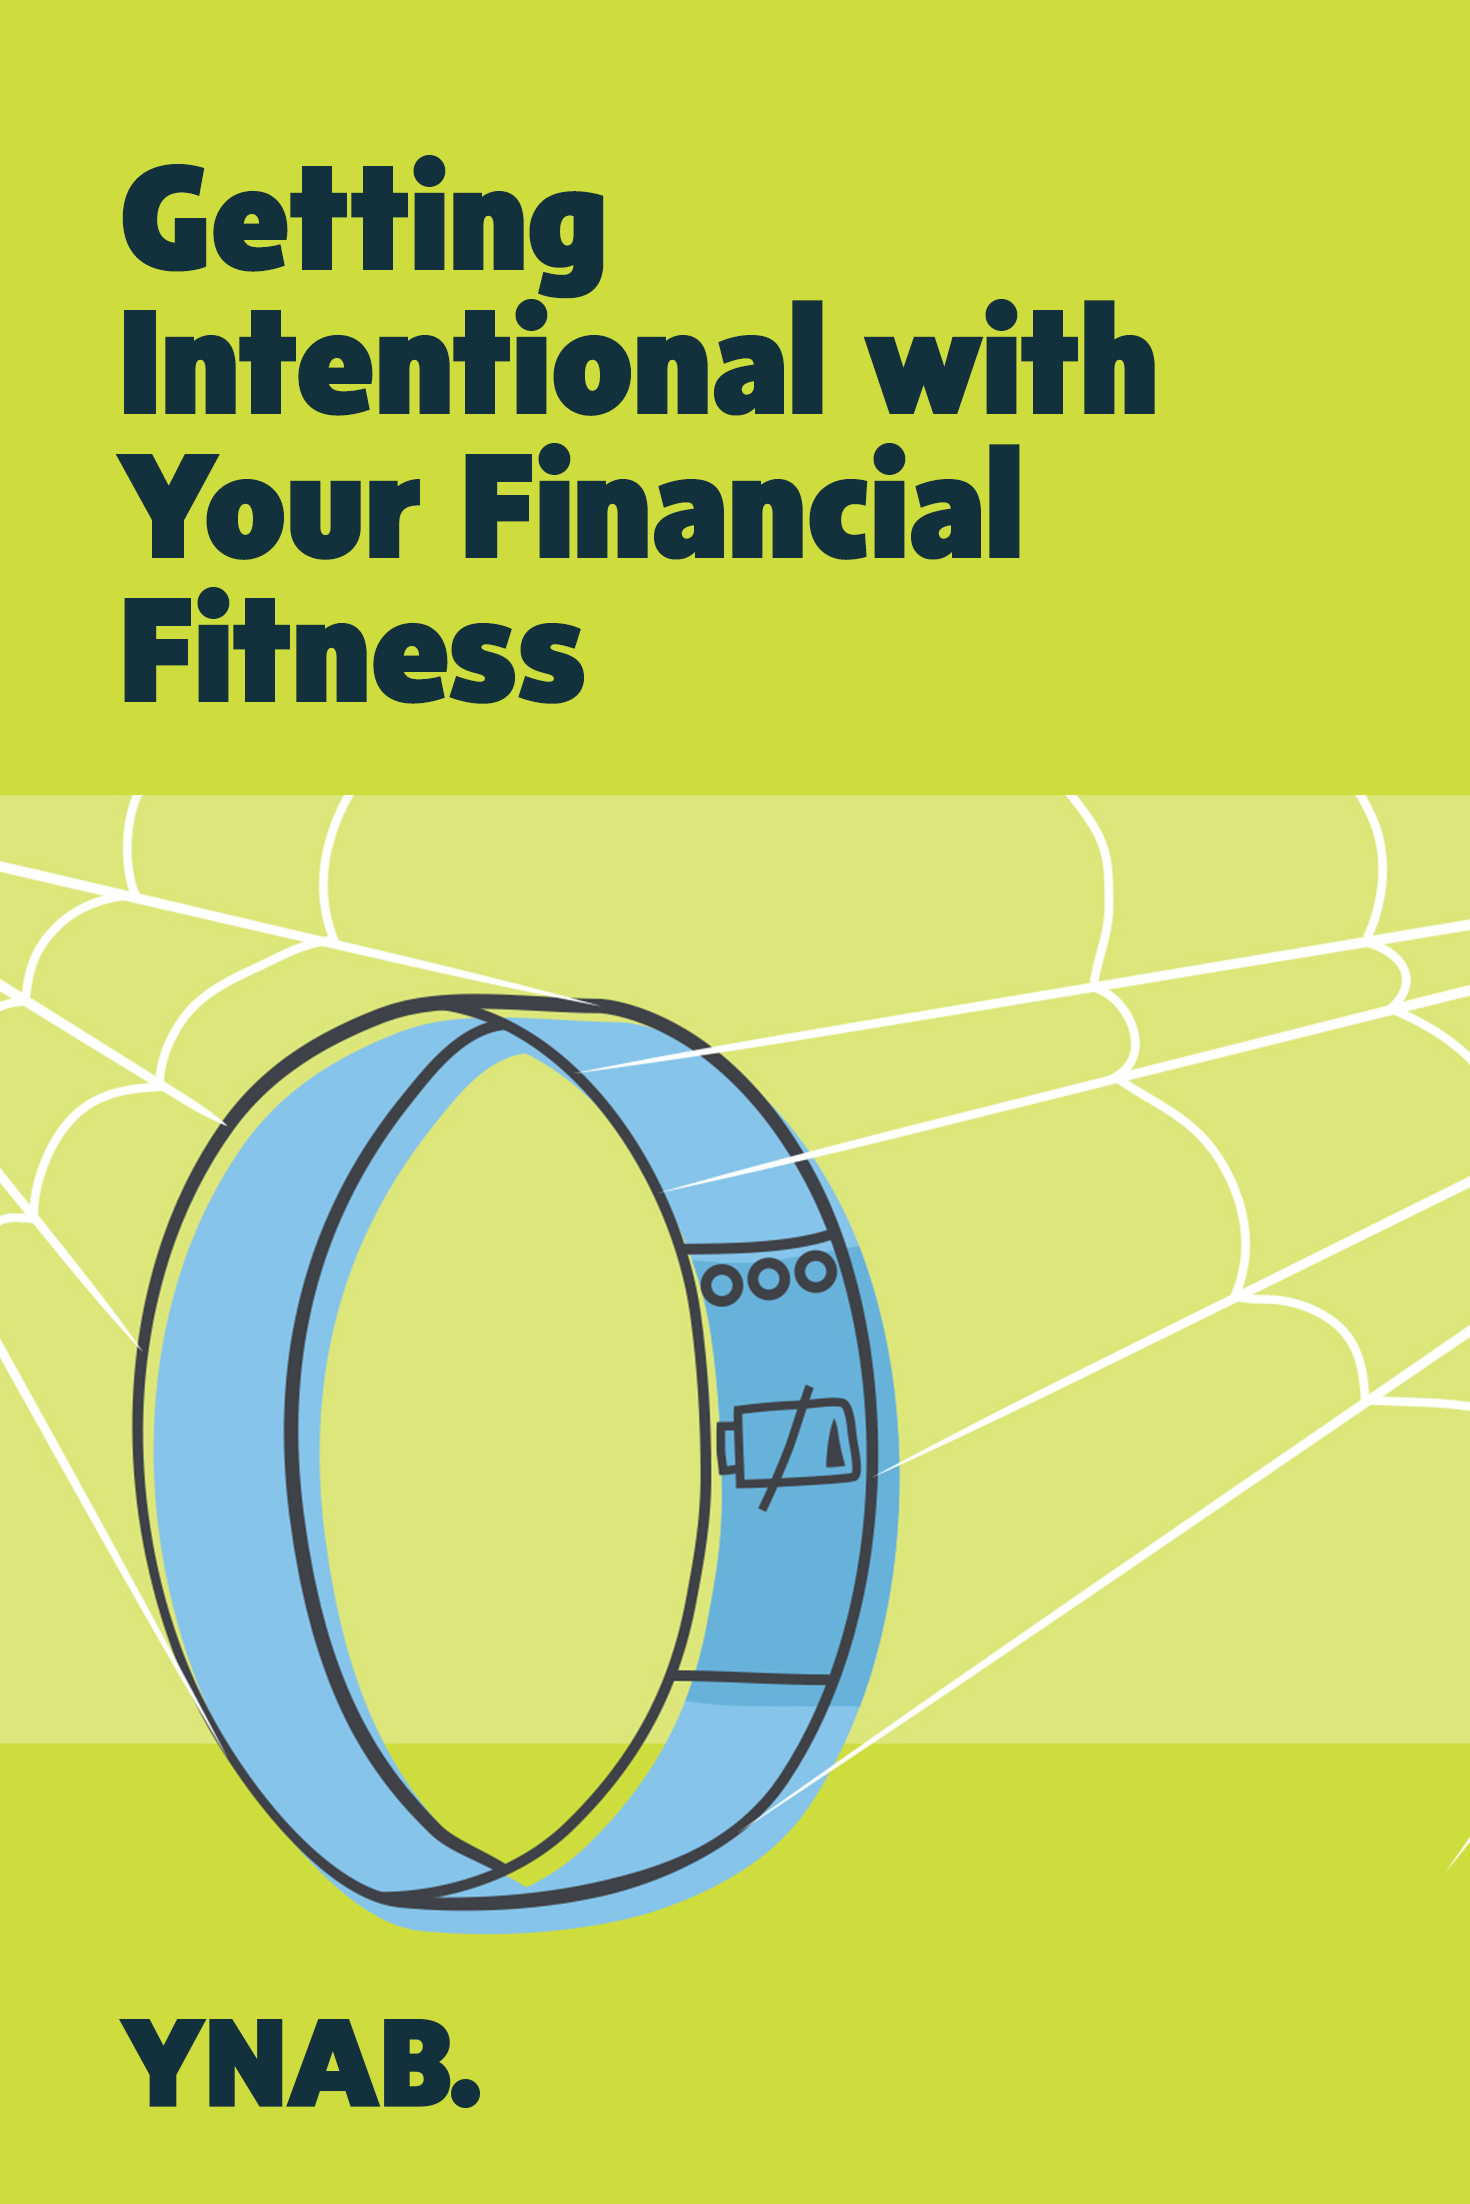 Personal Finance 101 (for crossfit junkies). Burpees are to fitness as budgeting is to finances. It's not always easy. And sometimes you just have to gut it out. But it changes you... for the better. | YNAB